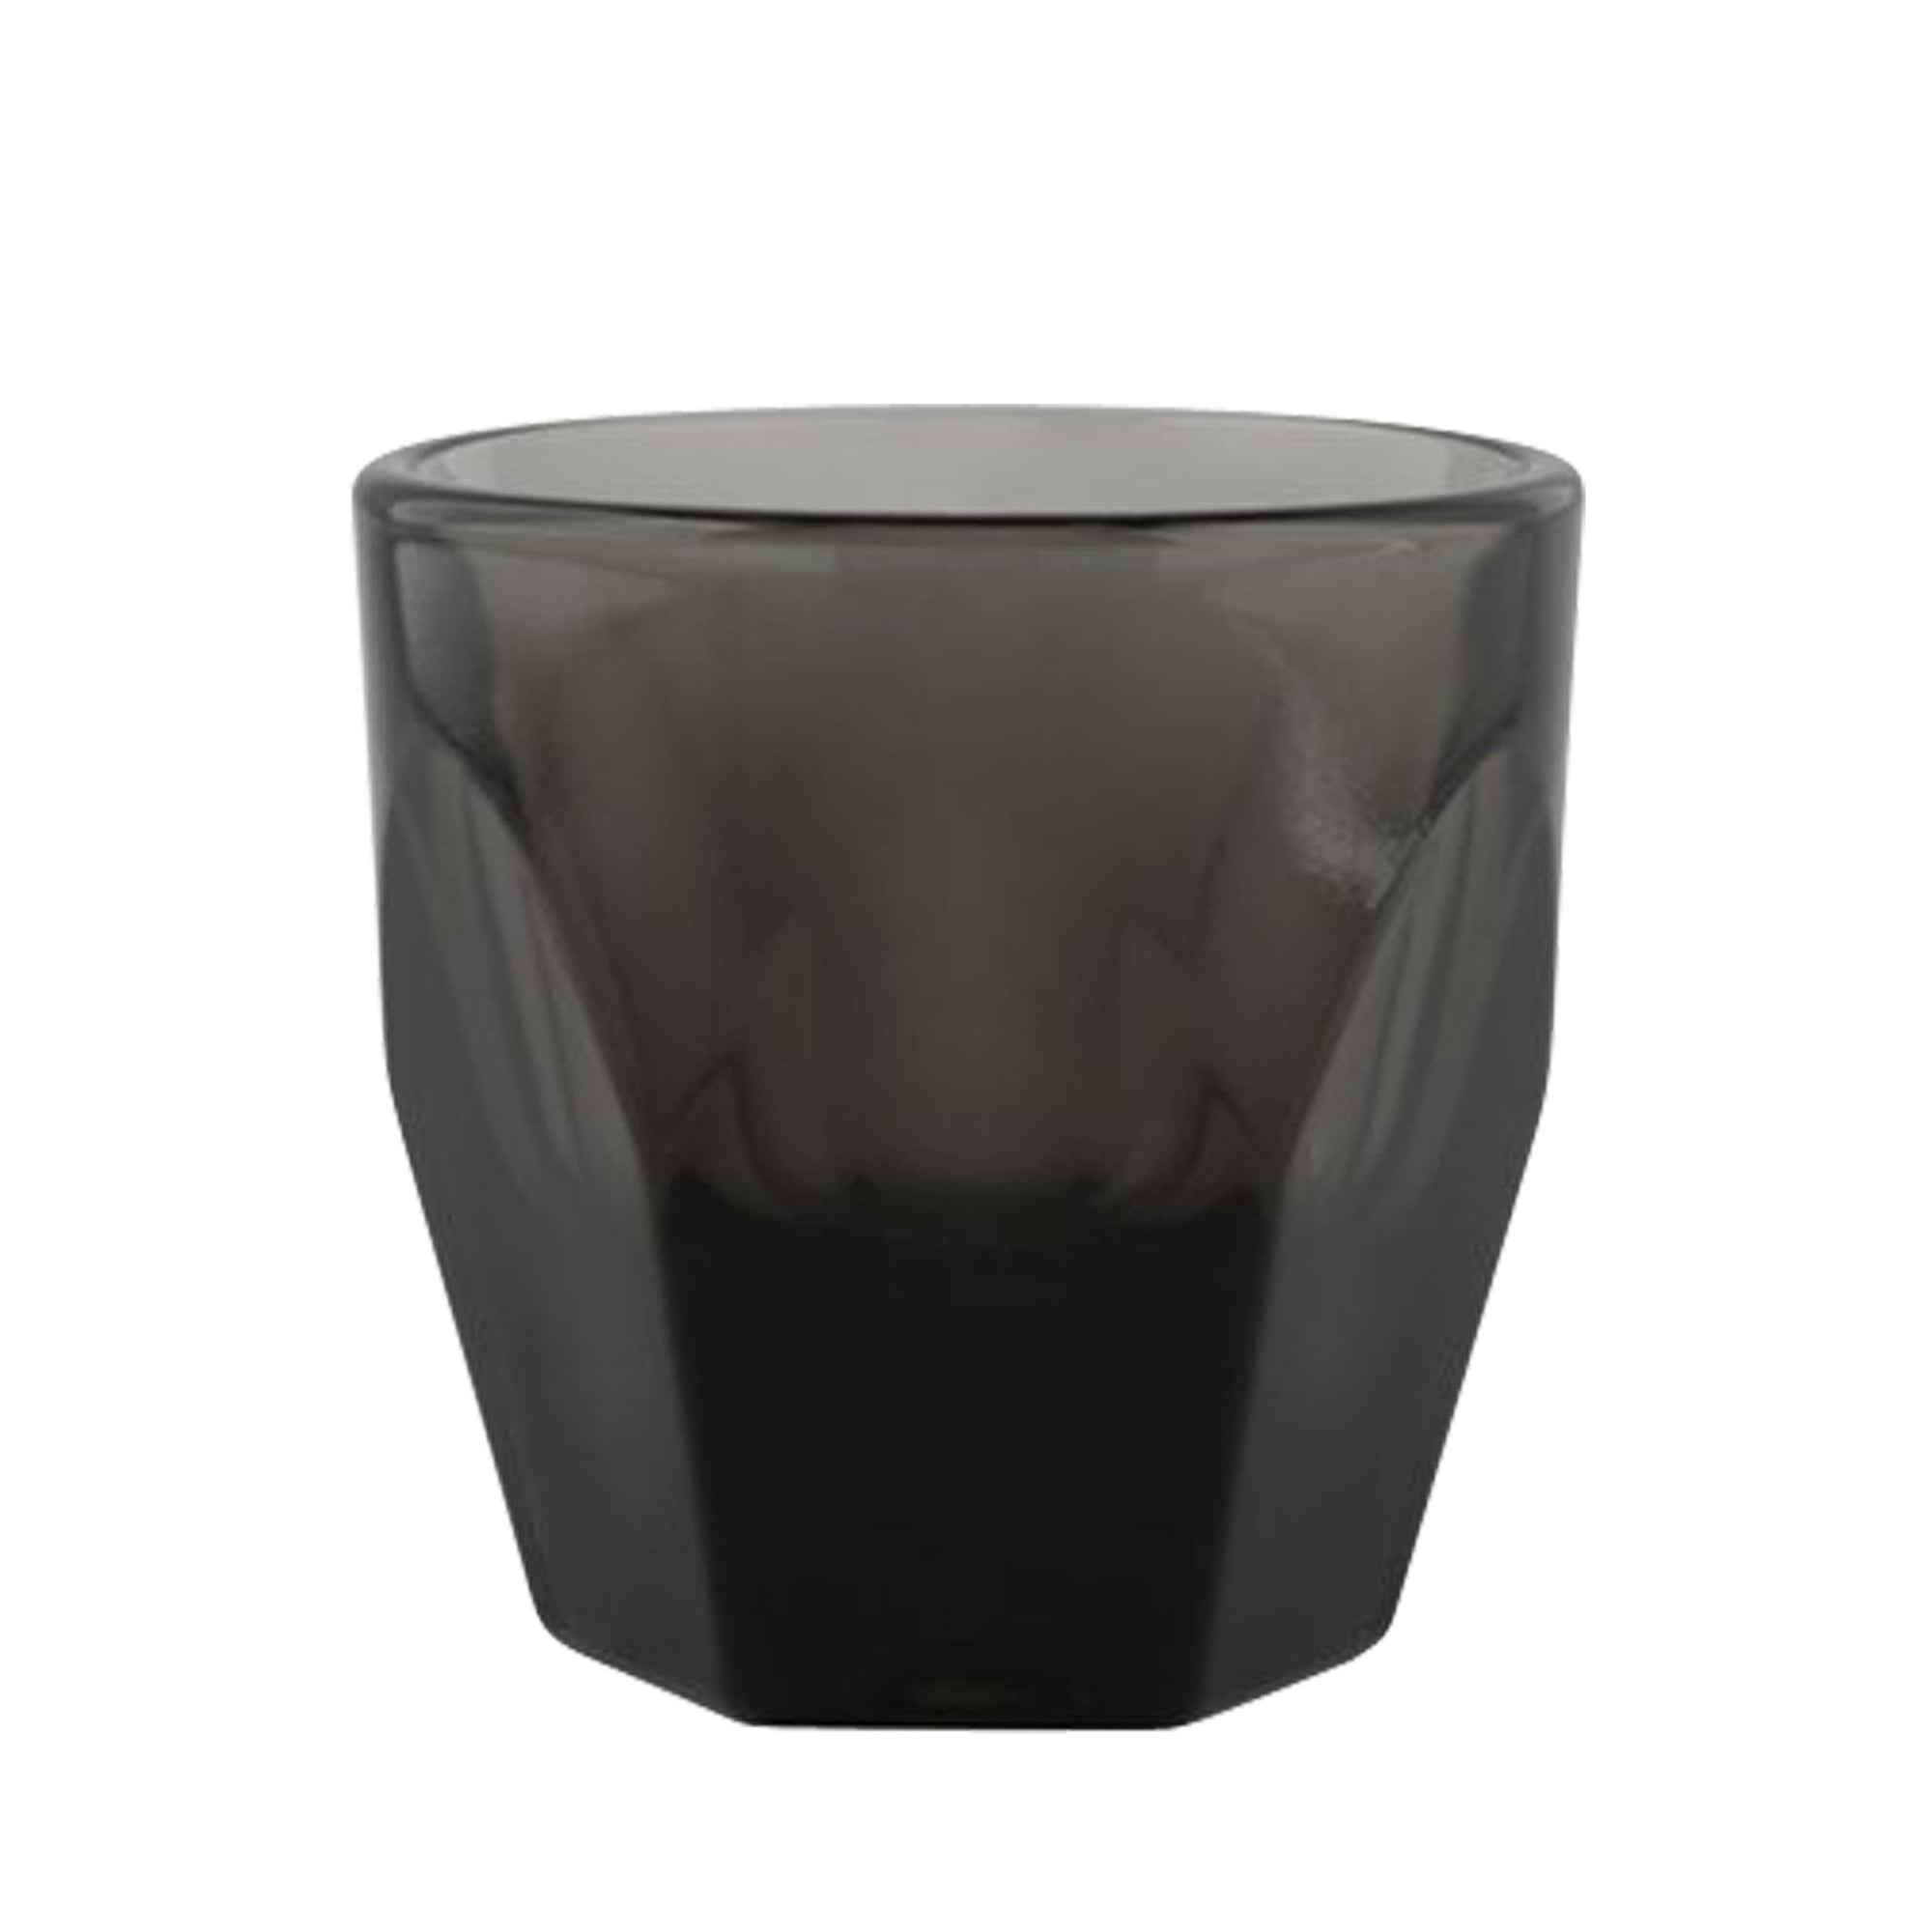 NN Vero Cortado Glass - Smoke 125ml - Espresso Gear